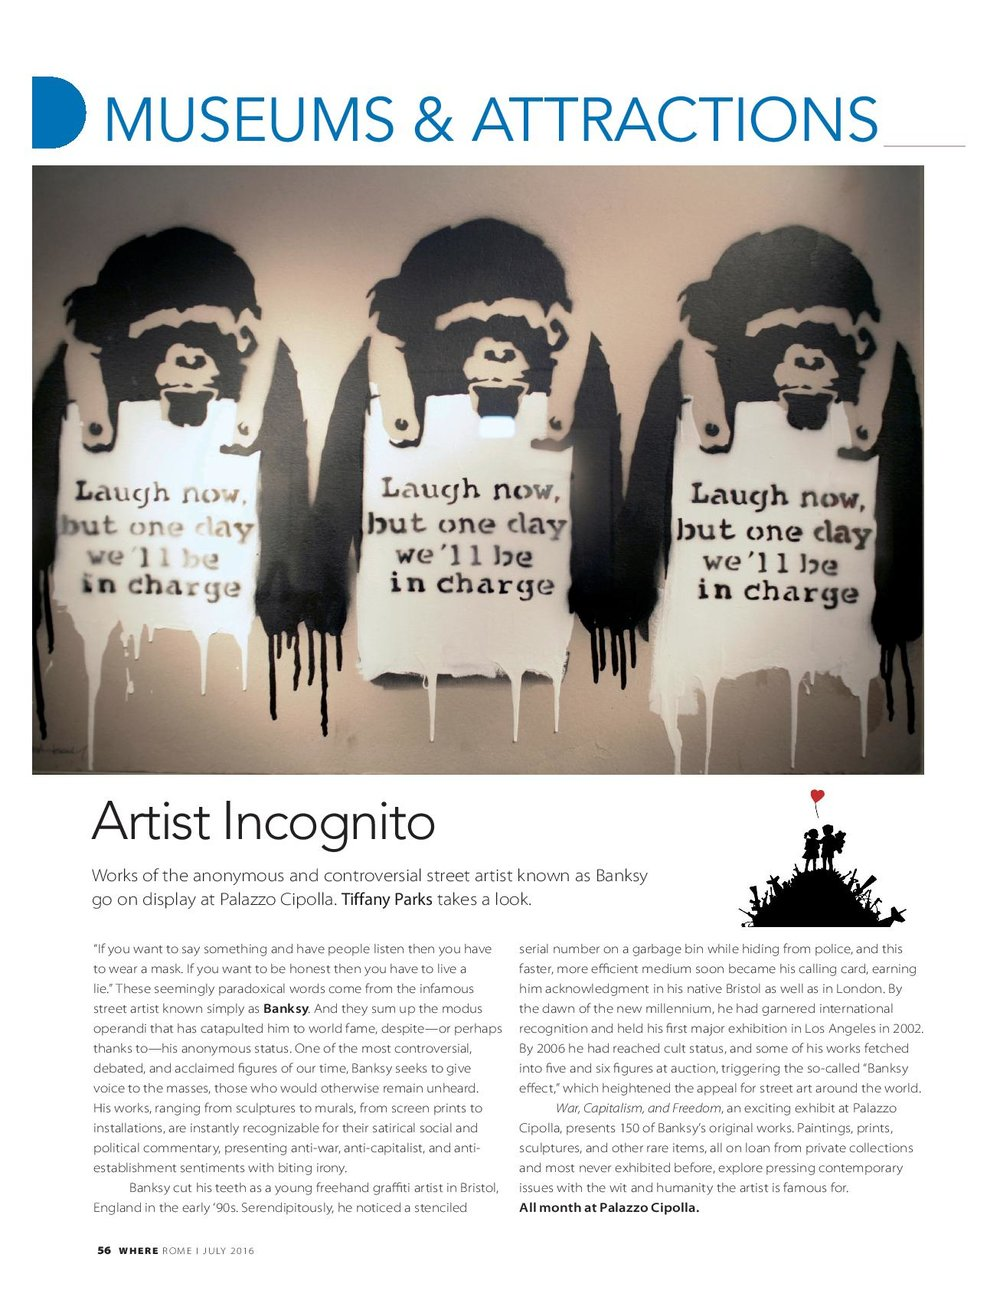 Artist-Incognito-Where-Rome-page-001.jpg